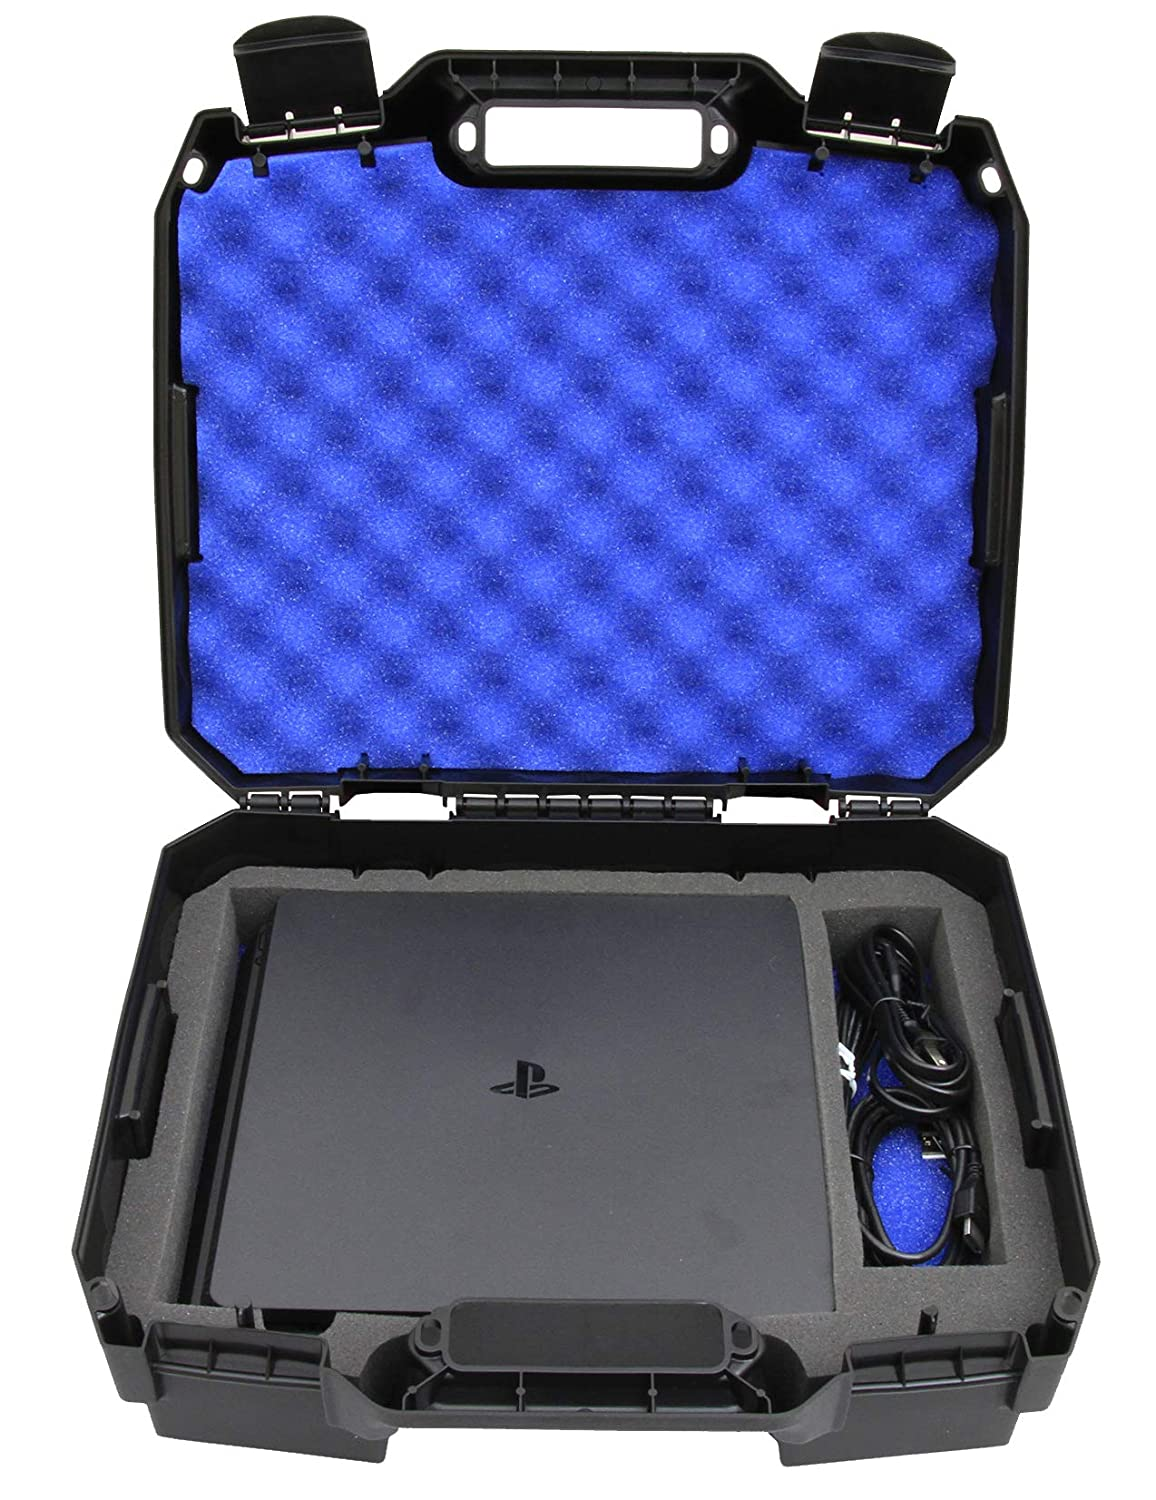 Casematix Bag Case Fits Playstation 4 Slim 1tb Console and Accessories PS4 Slim Console , Controller , Wireless Move Motion , Games , Cables Only , ...